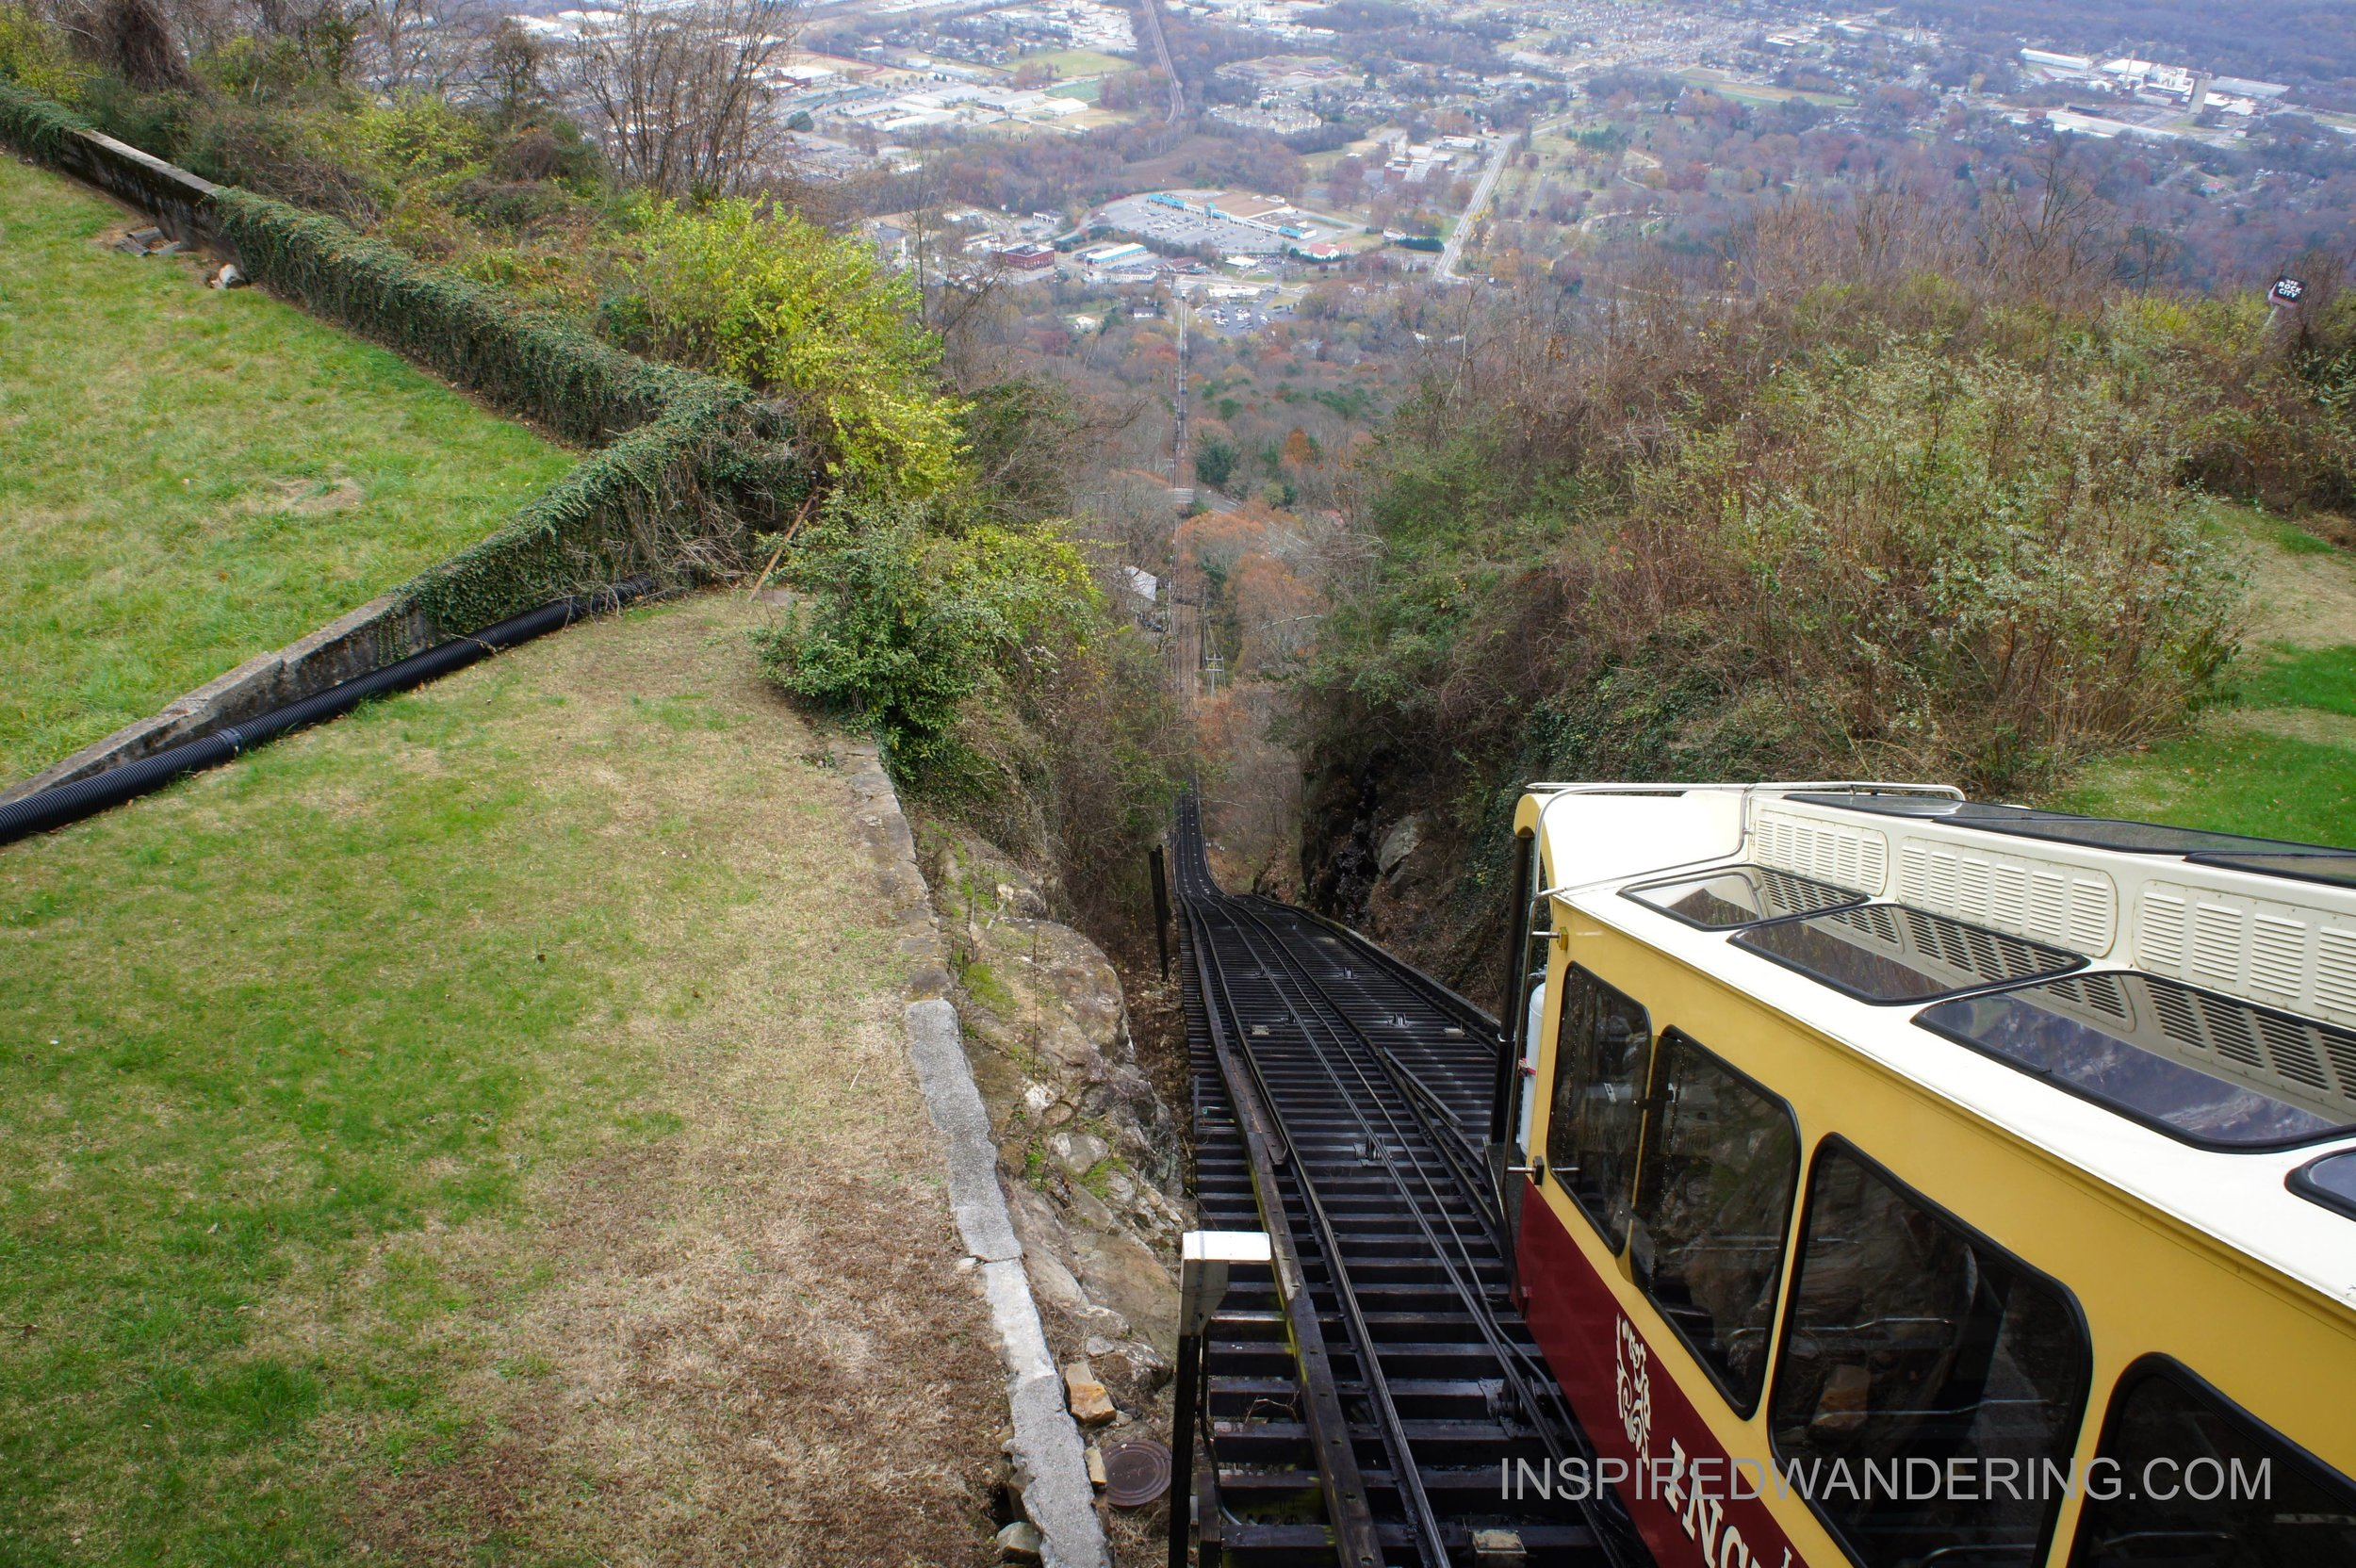 Incline Railway, Chattanooga, TN